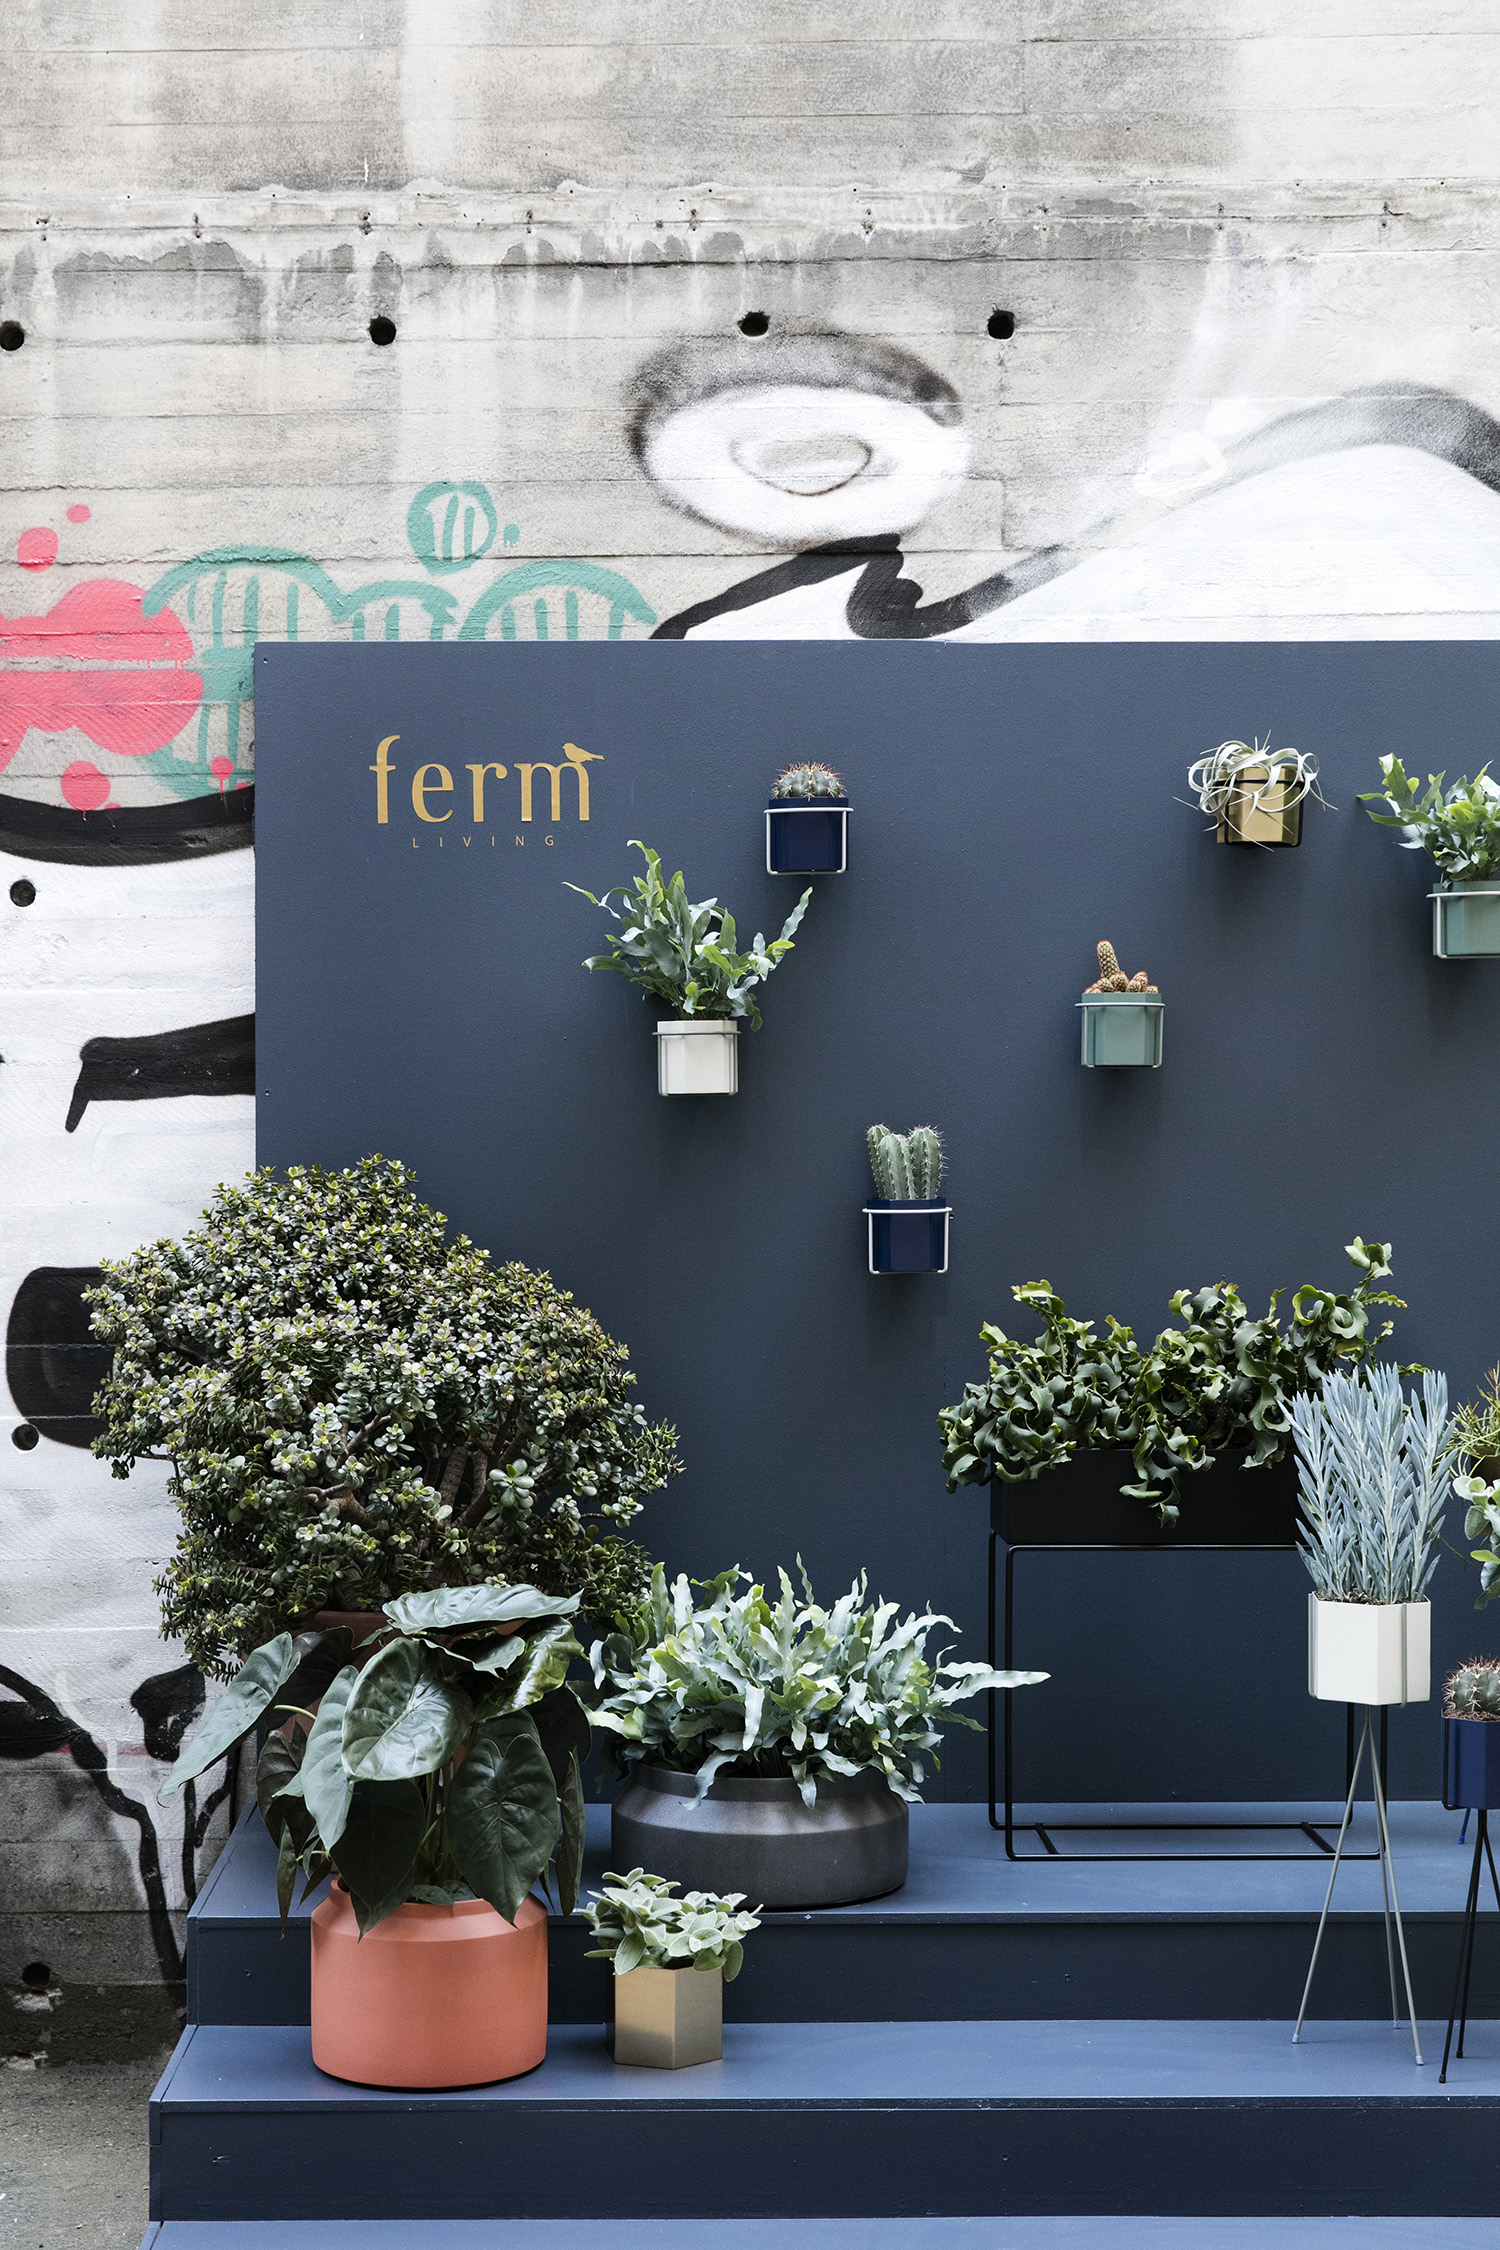 ferm LIVING pop up shop